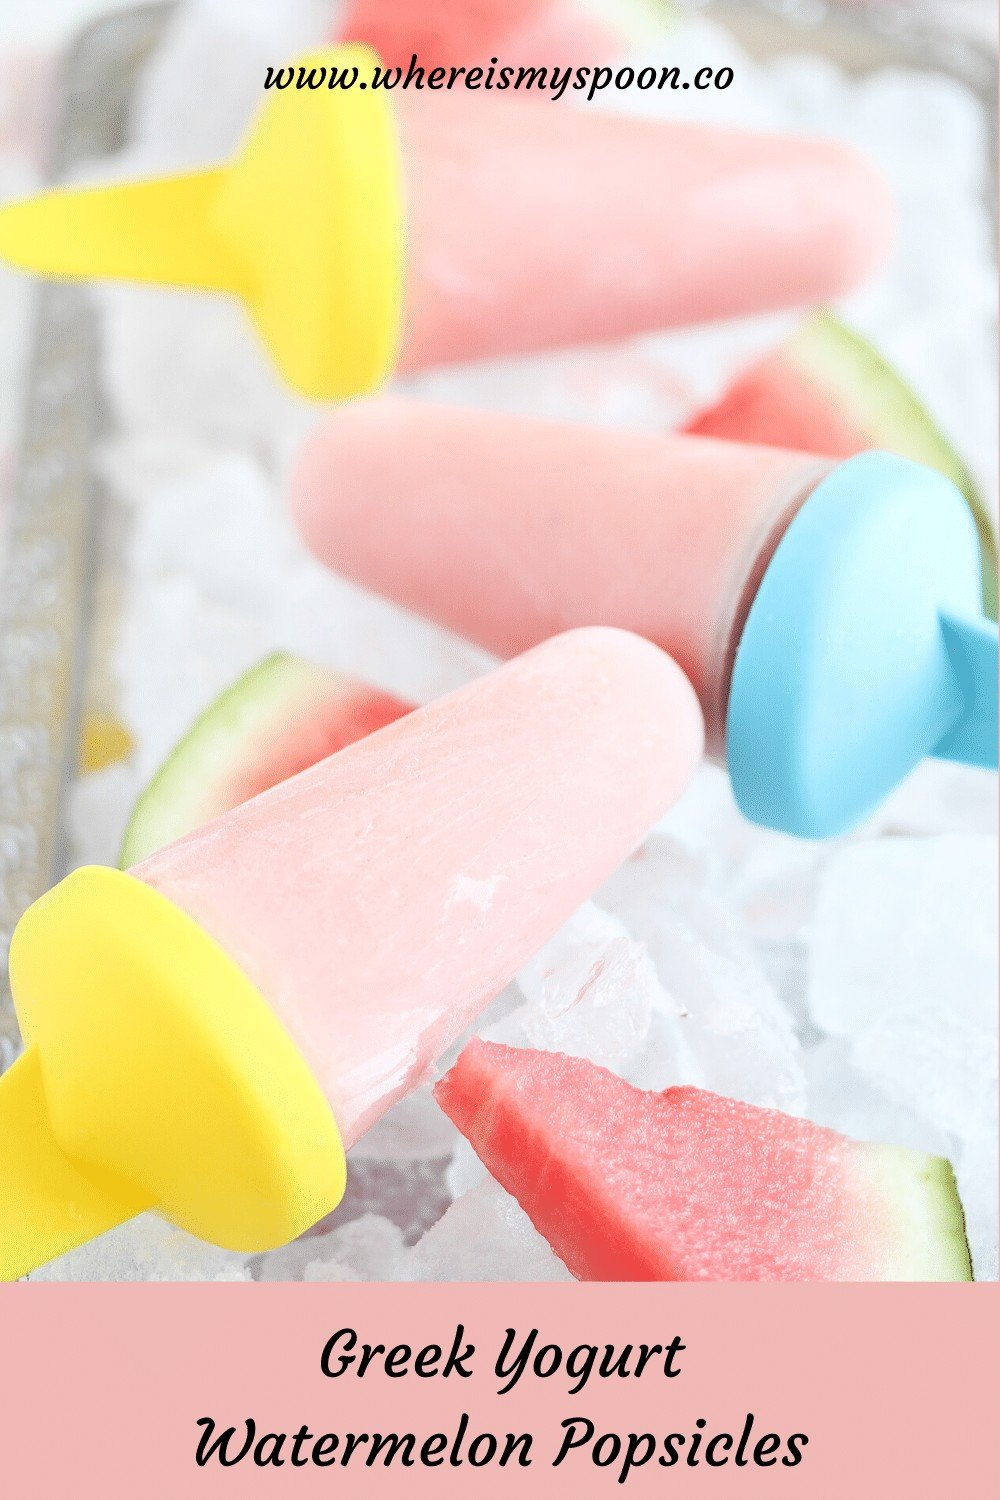 popsicles on a ice cubes bed